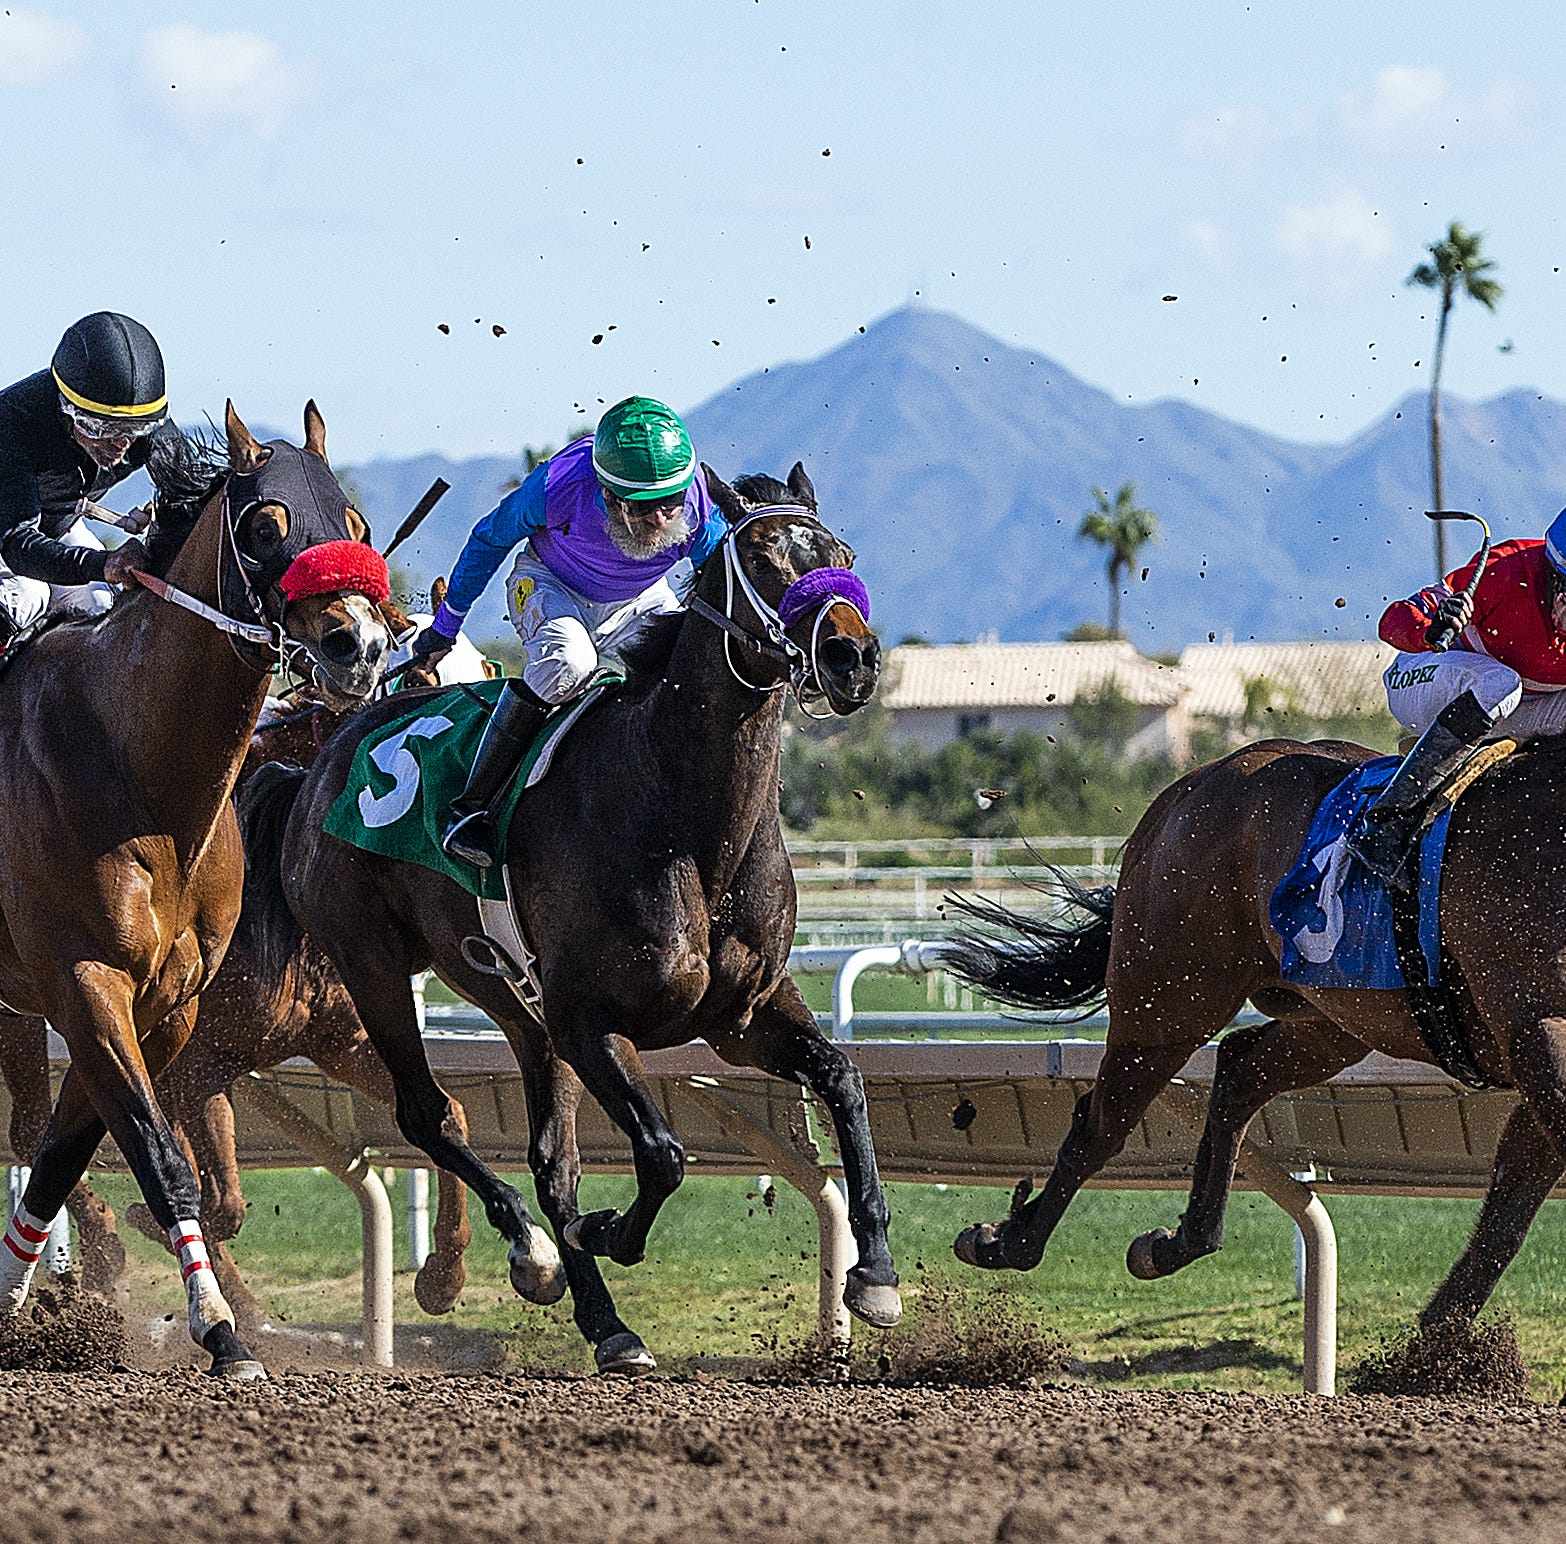 Turf Paradise jockey crushed by his horse waits 30 minutes for an ambulance